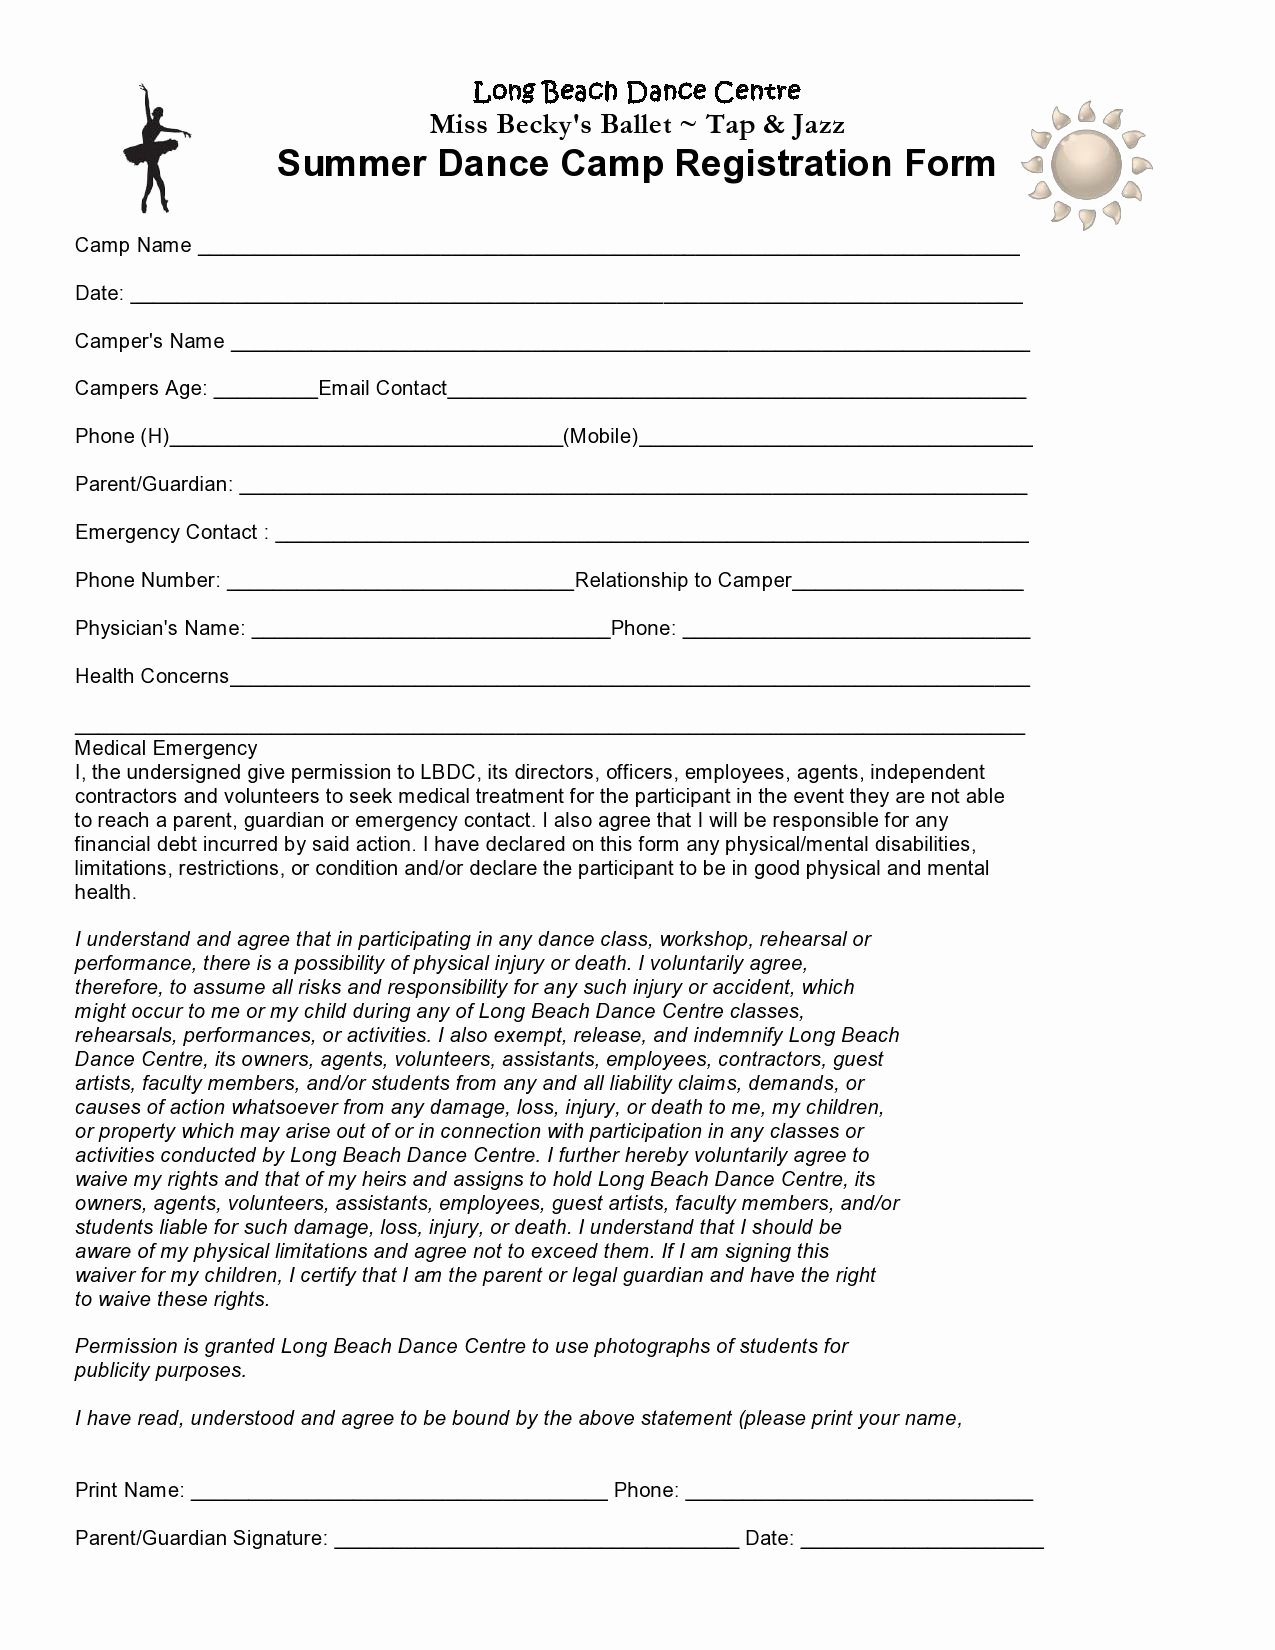 Class Registration form Template Elegant Pin by Taryn Lee On Kids Dance Camp In 2019